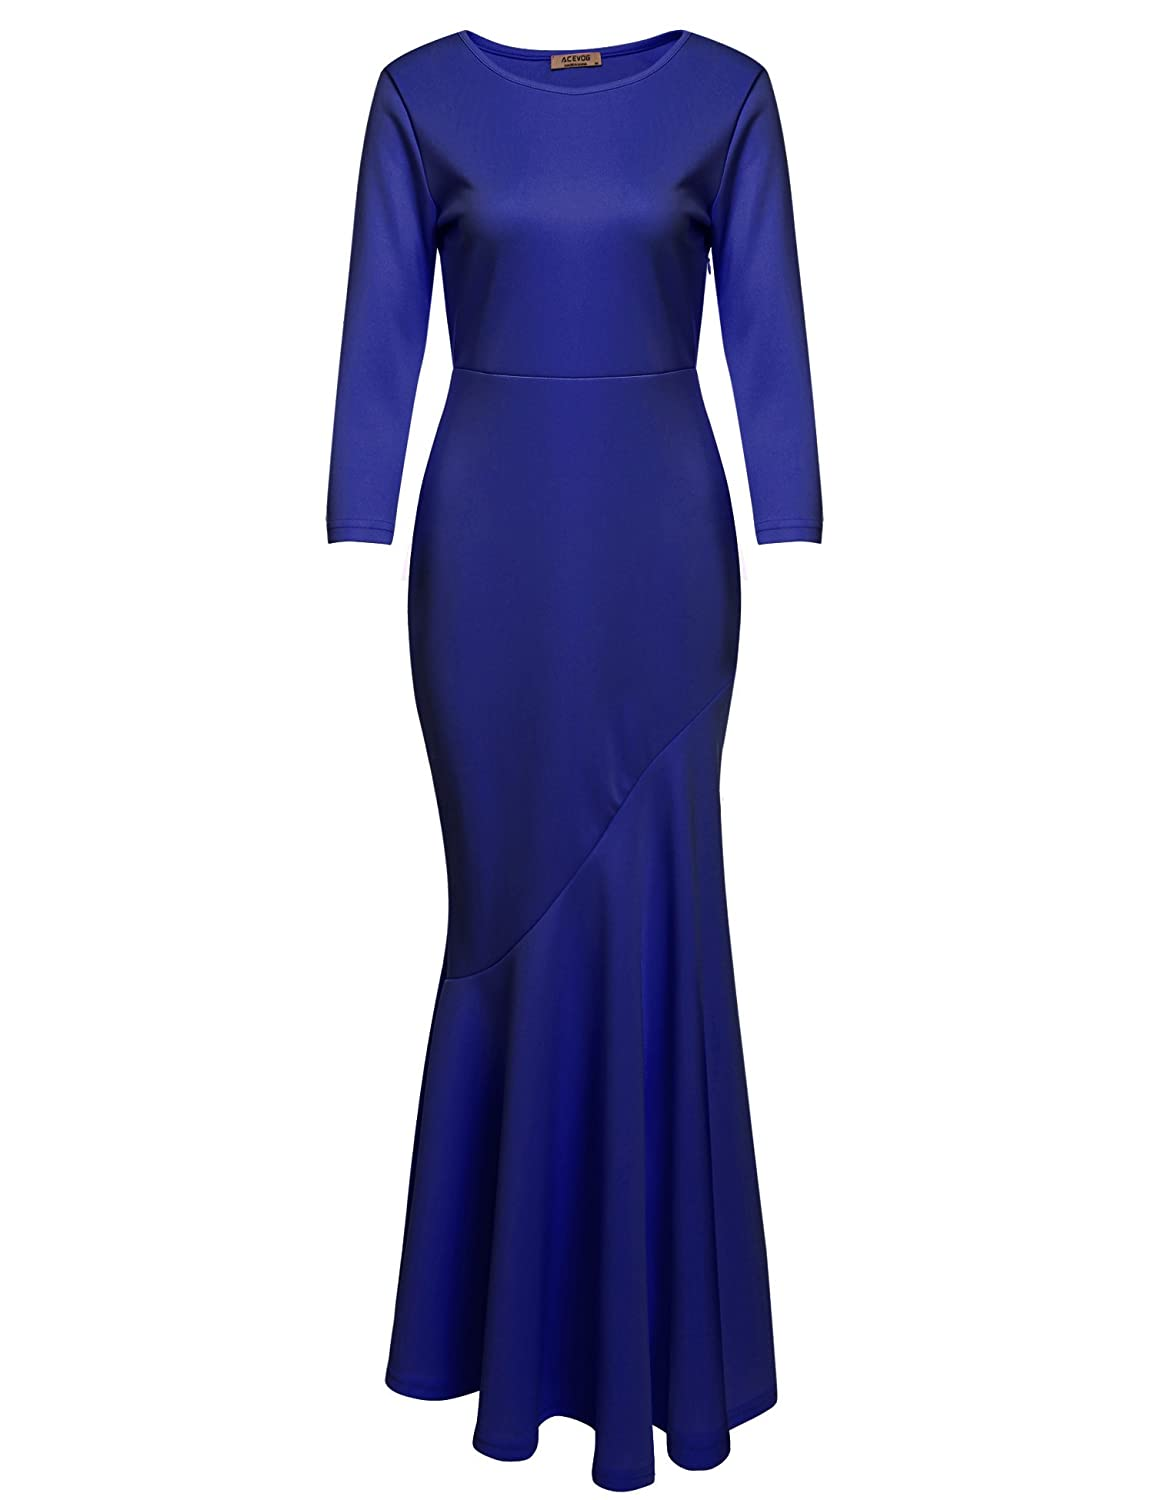 Vintage Evening Dresses and Formal Evening Gowns ACEVOG Womens 30s Brief Elegant Mermaid Evening Dress Bodycon Evening Gown $21.99 AT vintagedancer.com